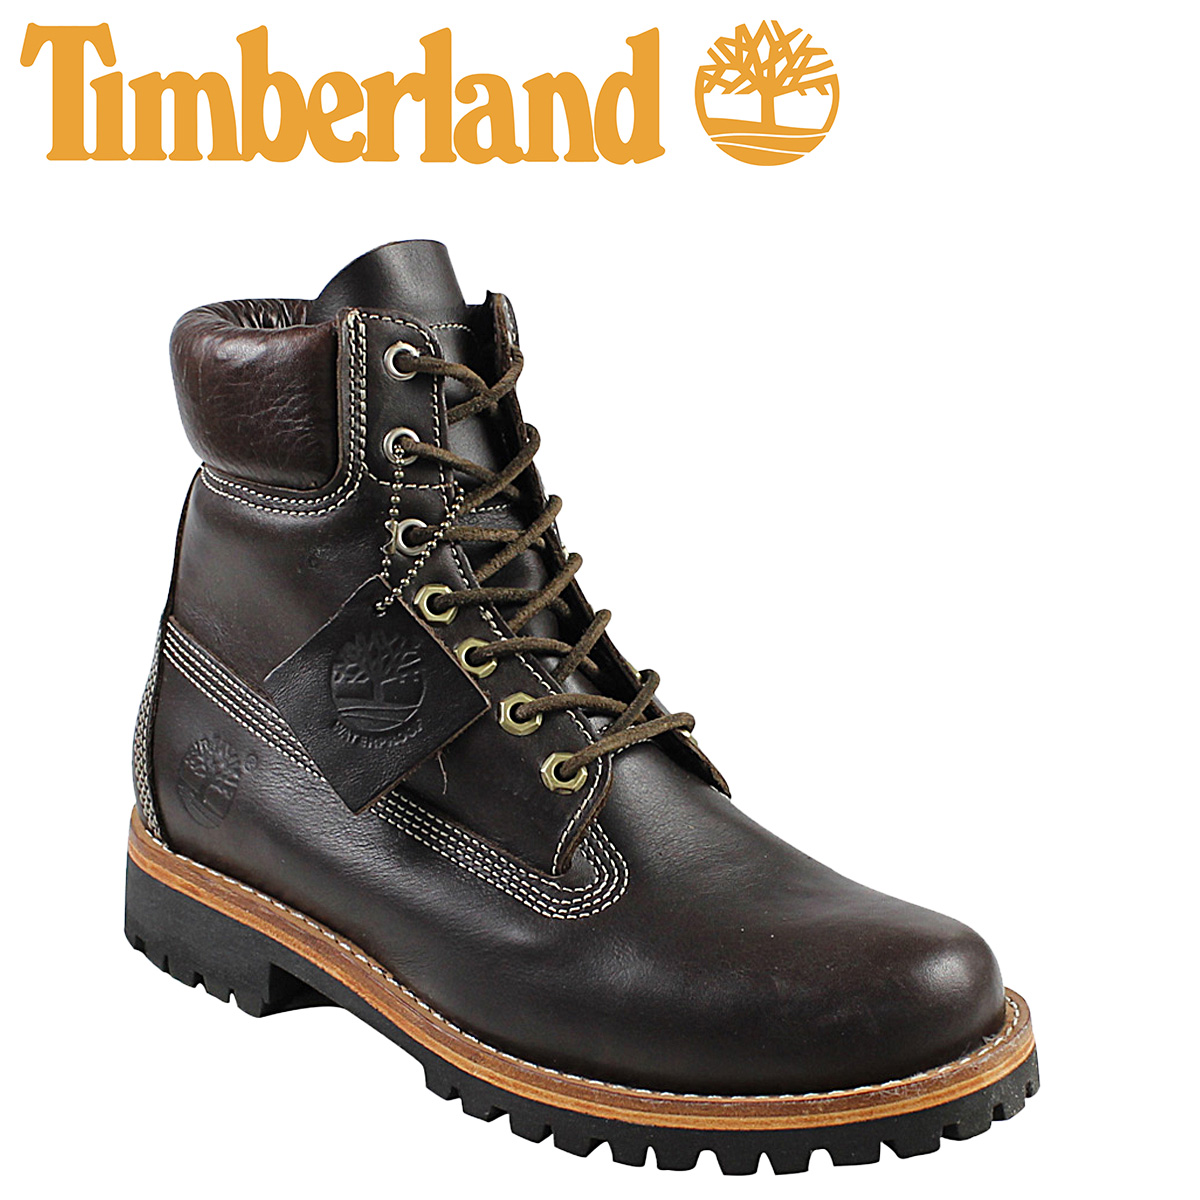 Proposed And Developed A New Technology Introduced In 1973, Fully  Waterproof Boots Since Craftsmanship, While, From Relaxing Weekend Can Be  Total ...